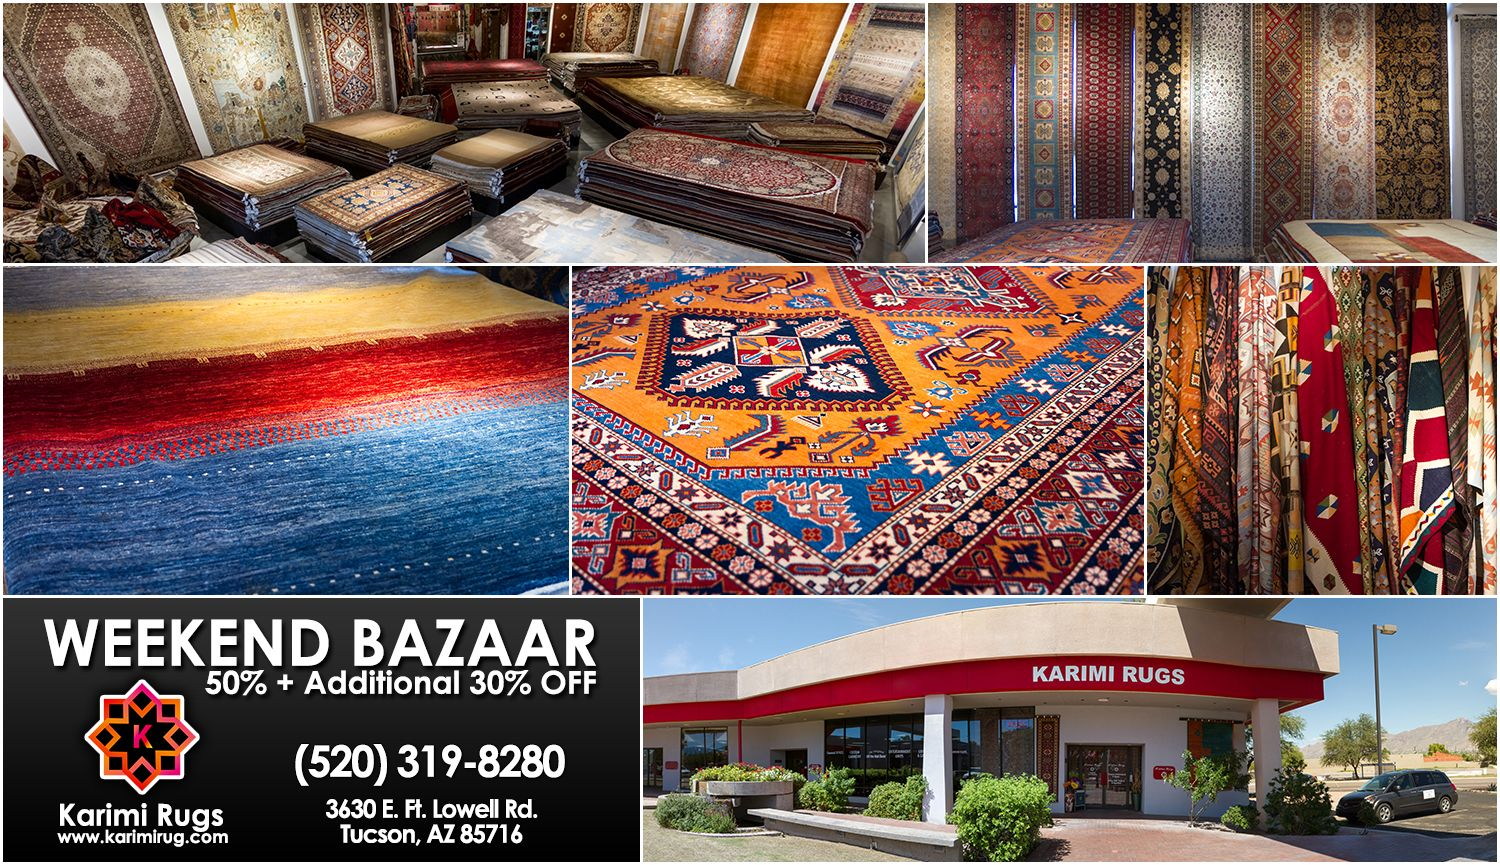 Weekend bazaar at karimi rugs additional off all our